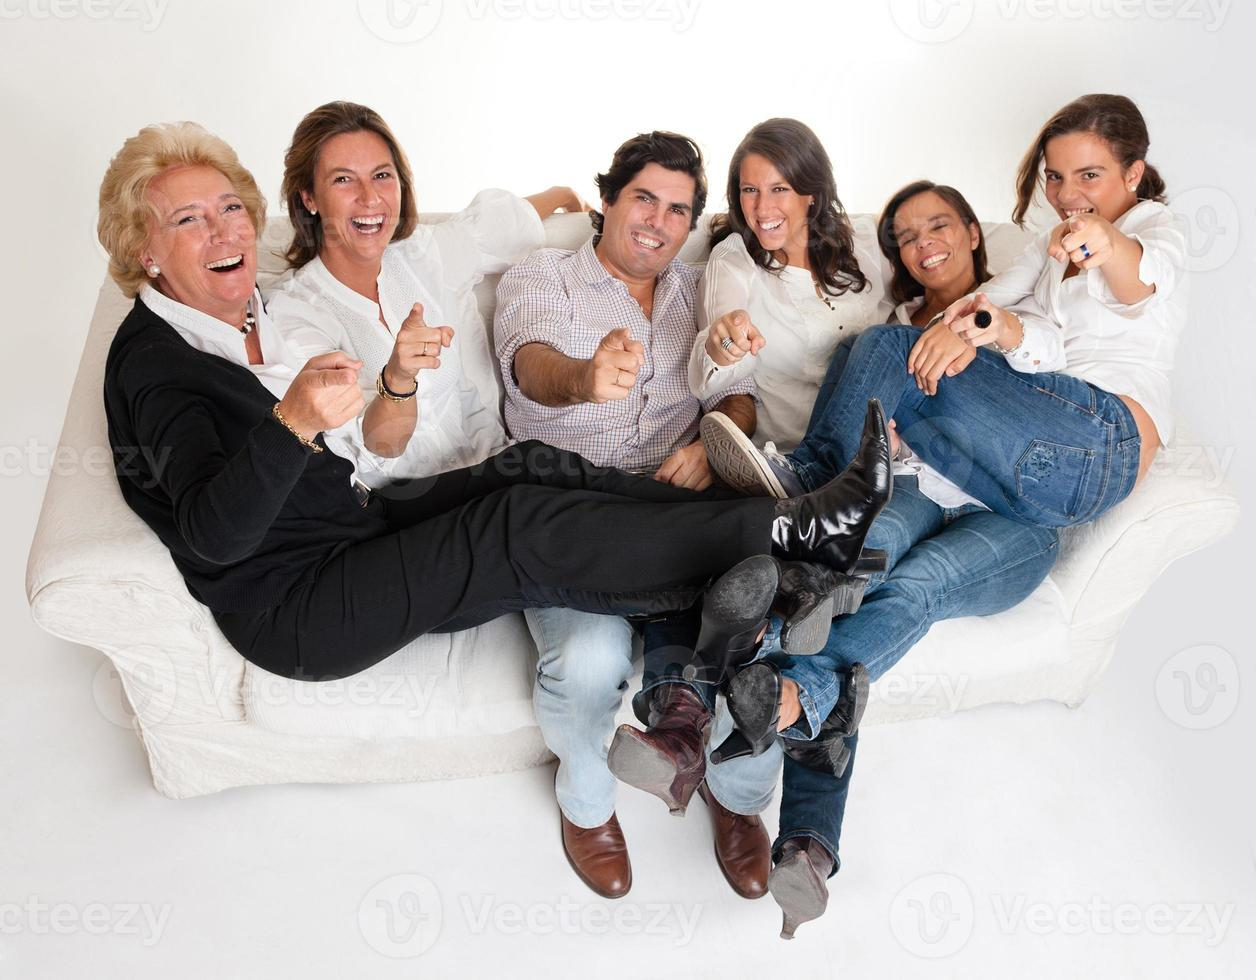 Laughing family photo